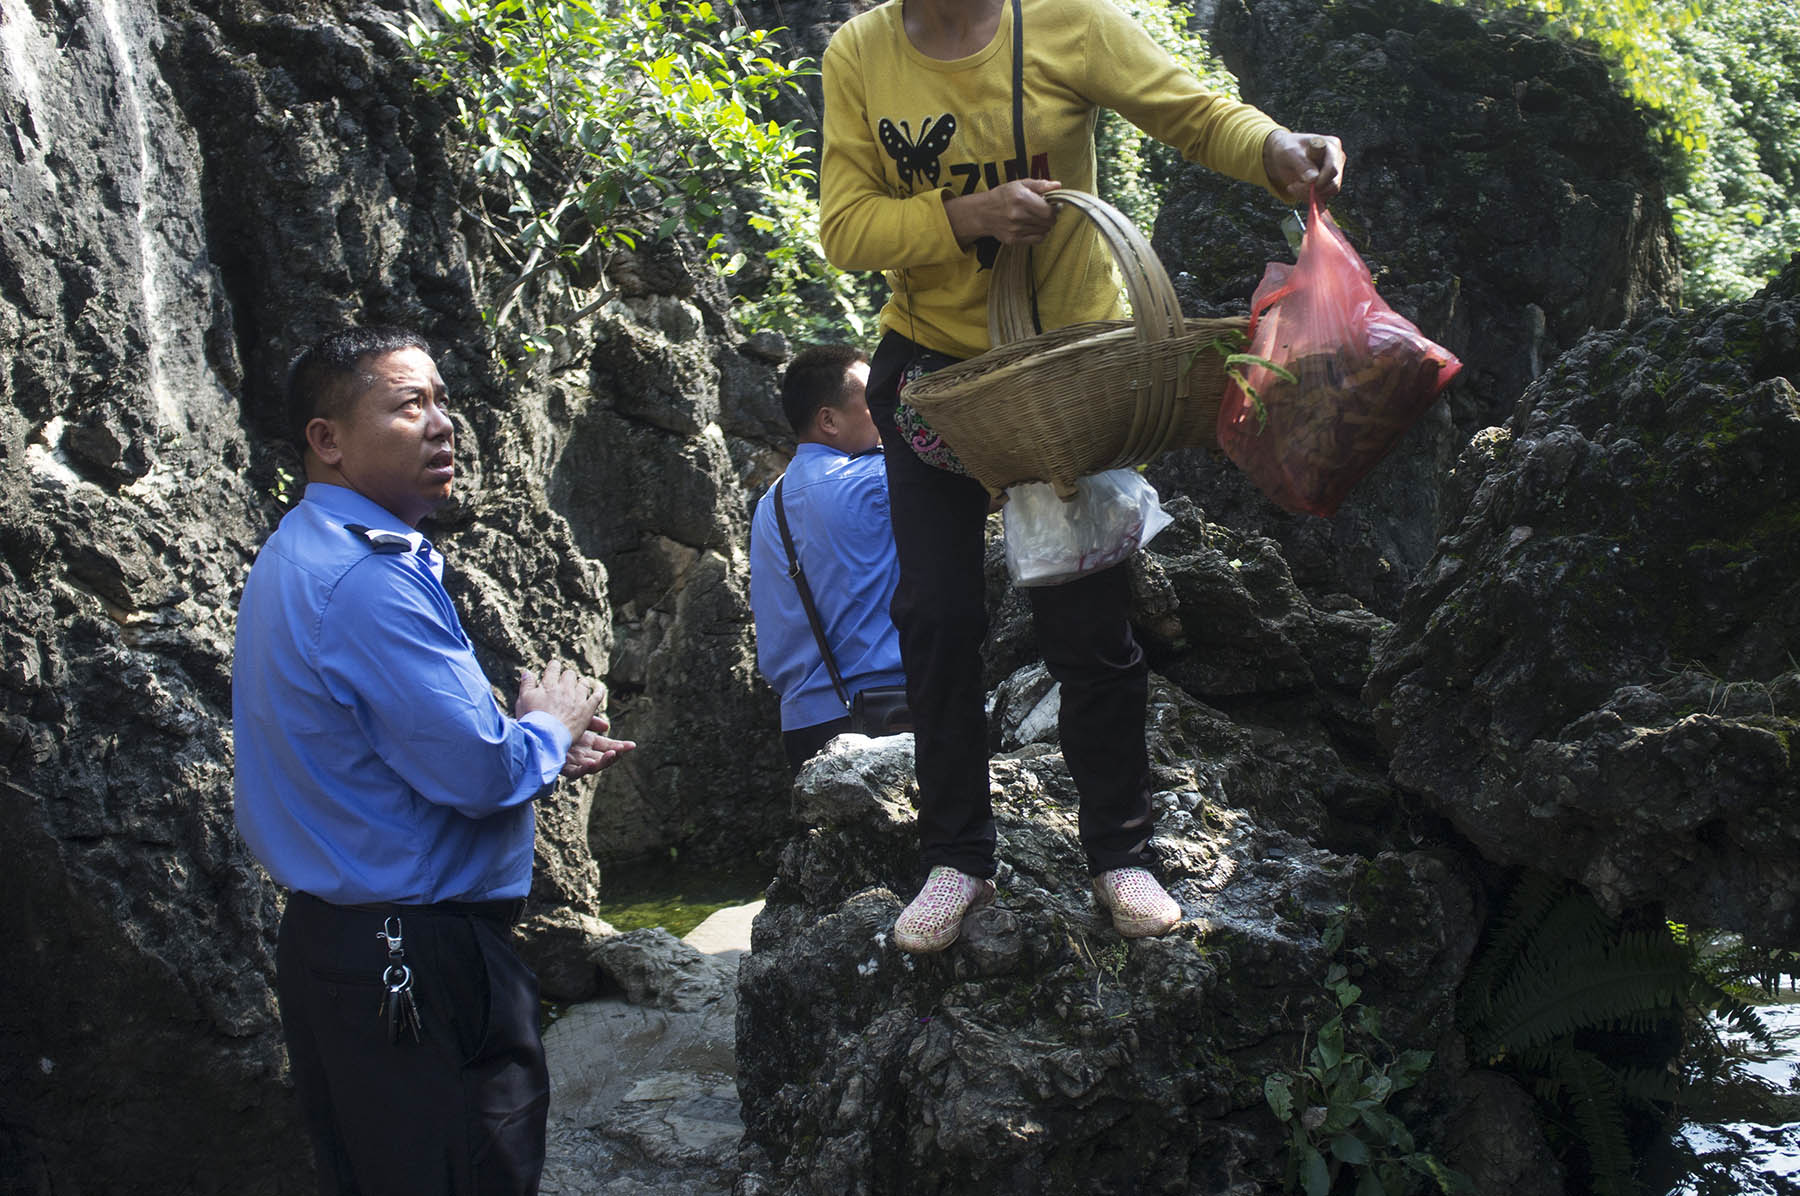 A security representative cleans his hands of the cucumbers he confiscated and threw away in the river, while a woman tries to step off the rock with an empty basket and bag of cucumber skins.